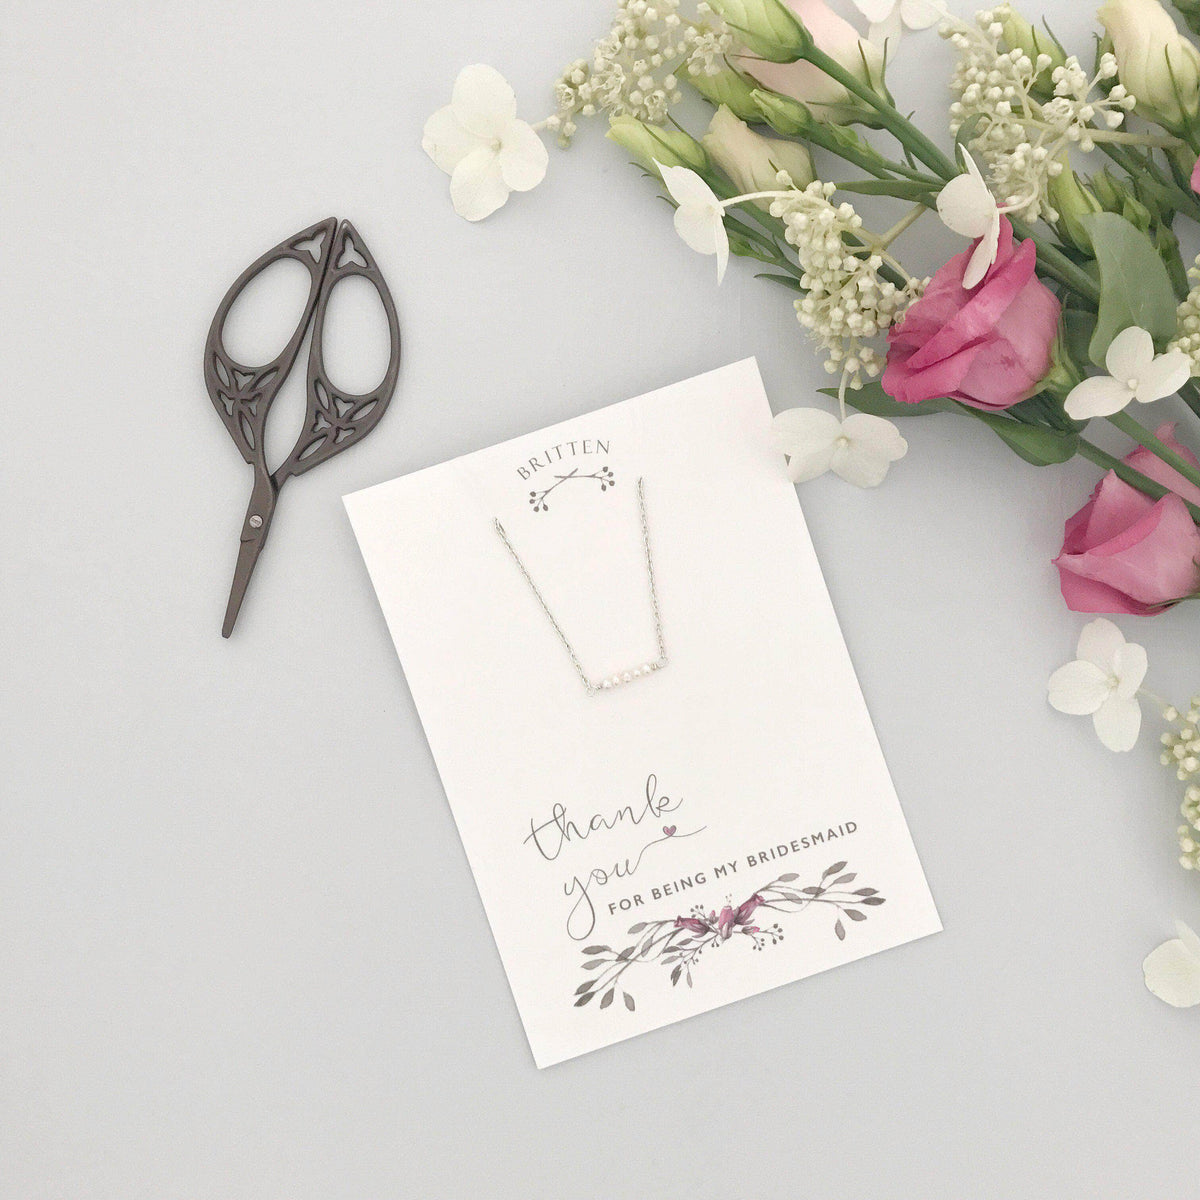 Bridesmaid Gift Silver Bridesmaid 'Thank You' gift silver bracelet - 'Freya'